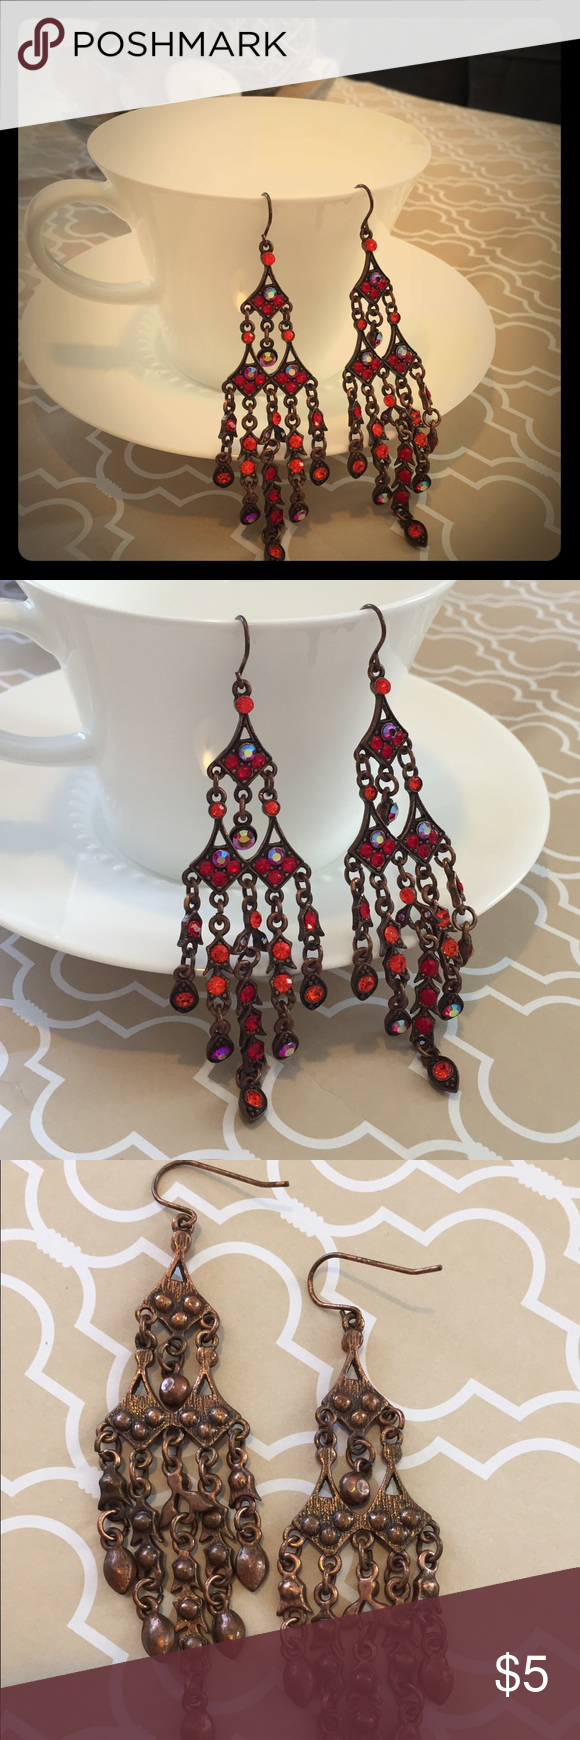 Chandelier earrings with red crystals ear loop chandelier chandelier earrings with red crystals arubaitofo Choice Image